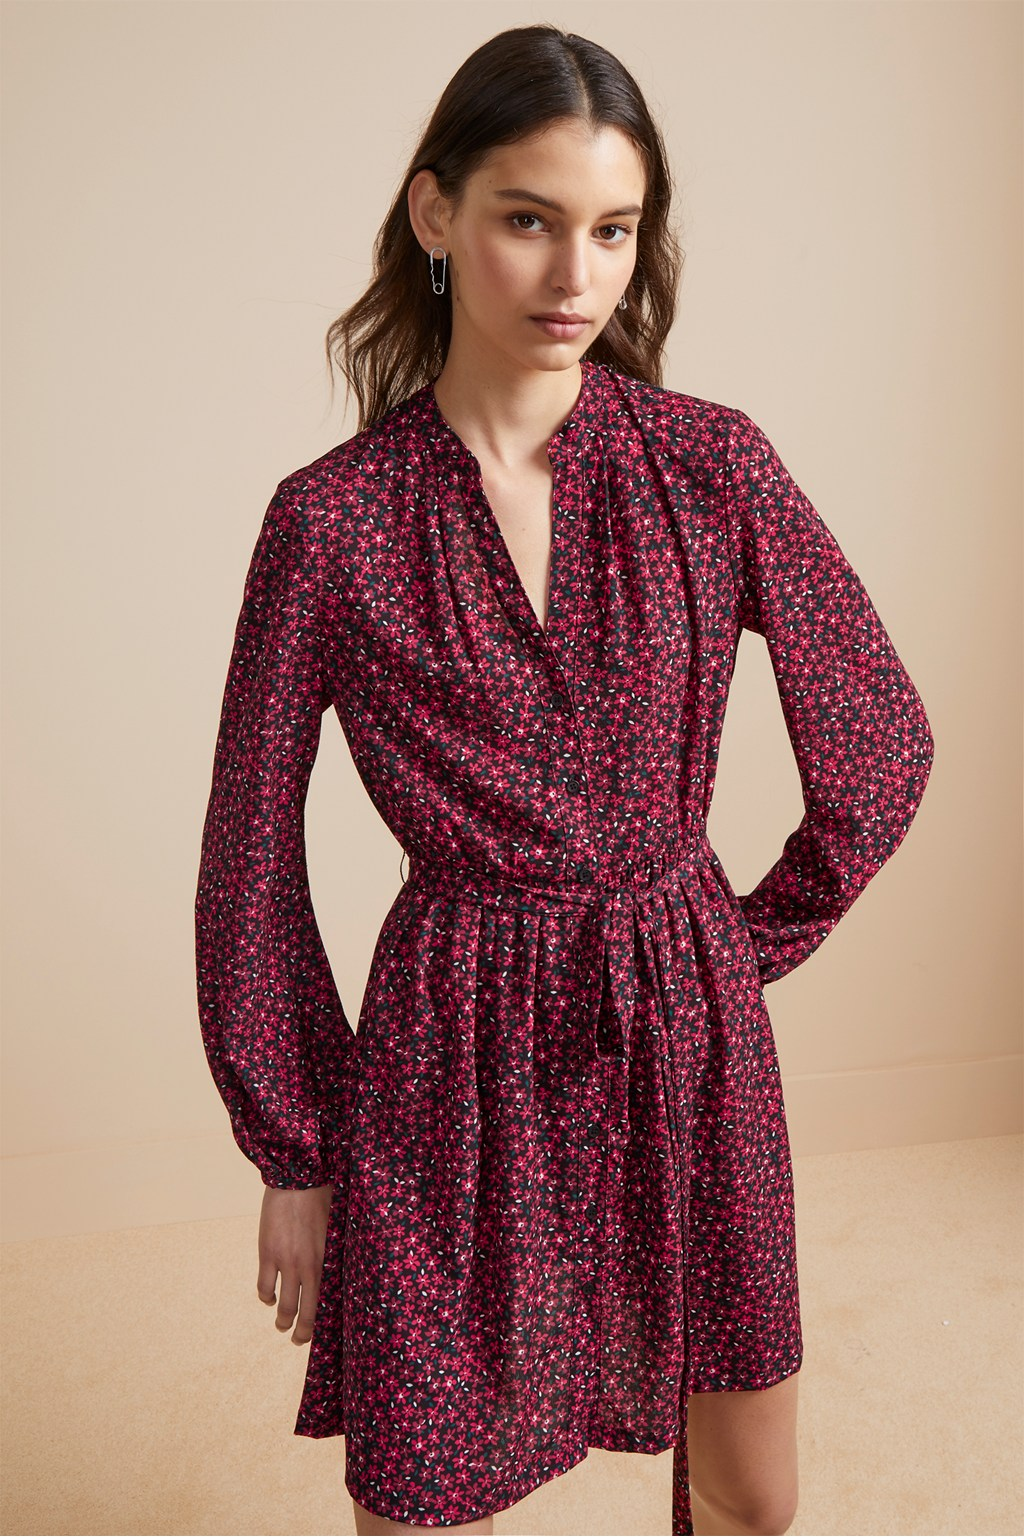 a4872b730a Aubine Fluid Floral Shirt Dress. loading images.